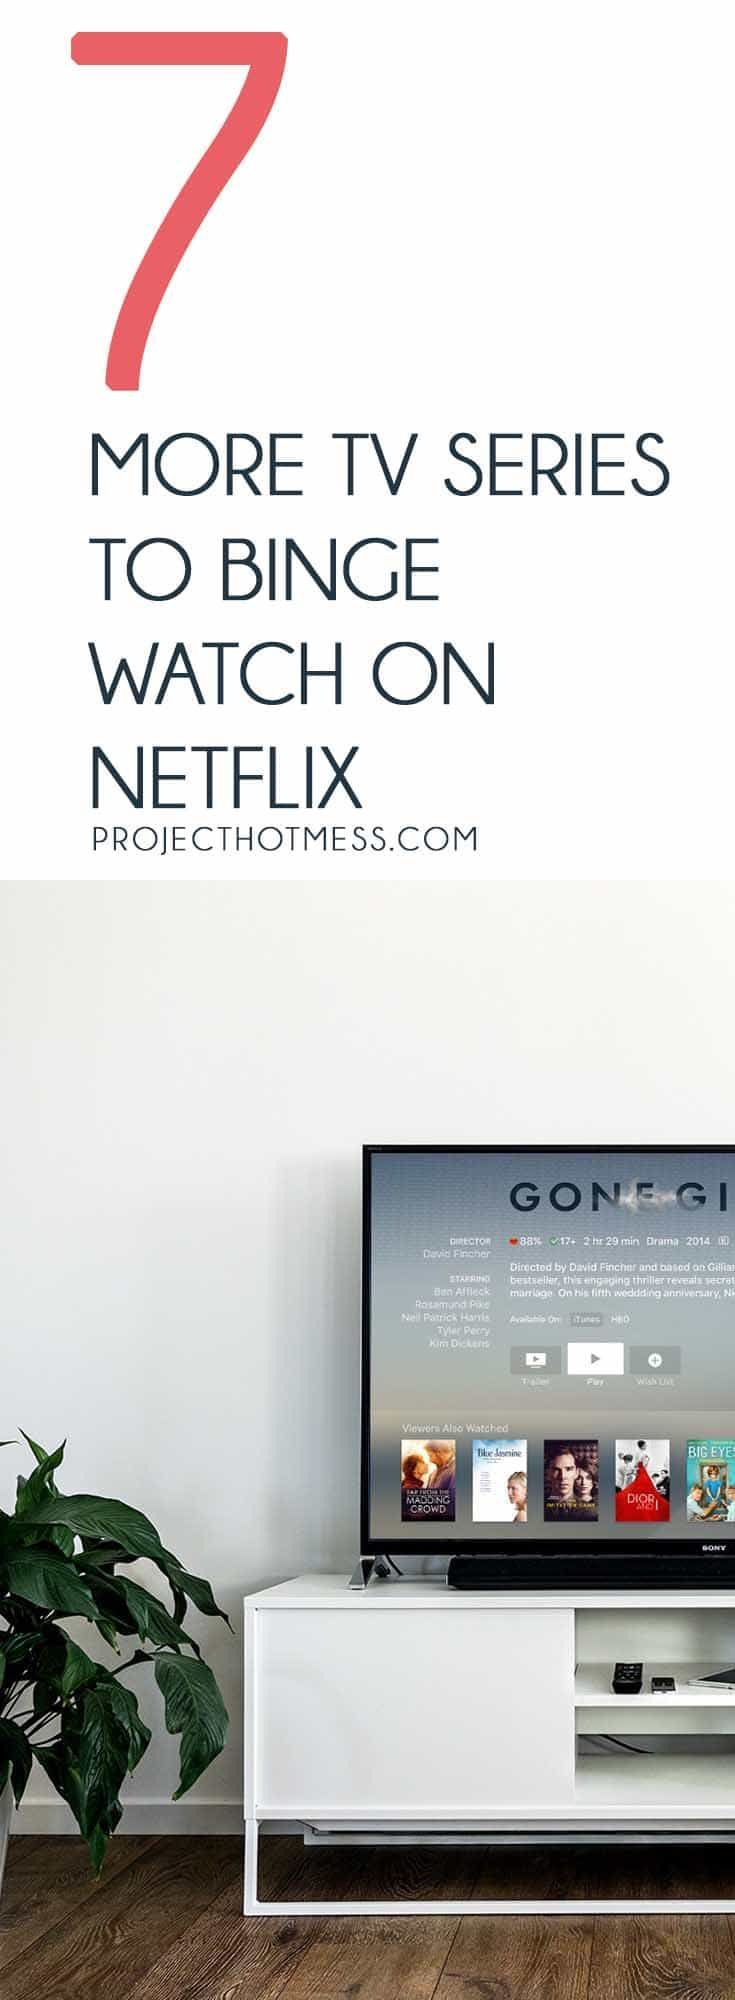 Here's a whole list of TV series to binge watch on Netflix. No need to wait for new episodes to be released! Put your comfy pants on and get your binge on!!